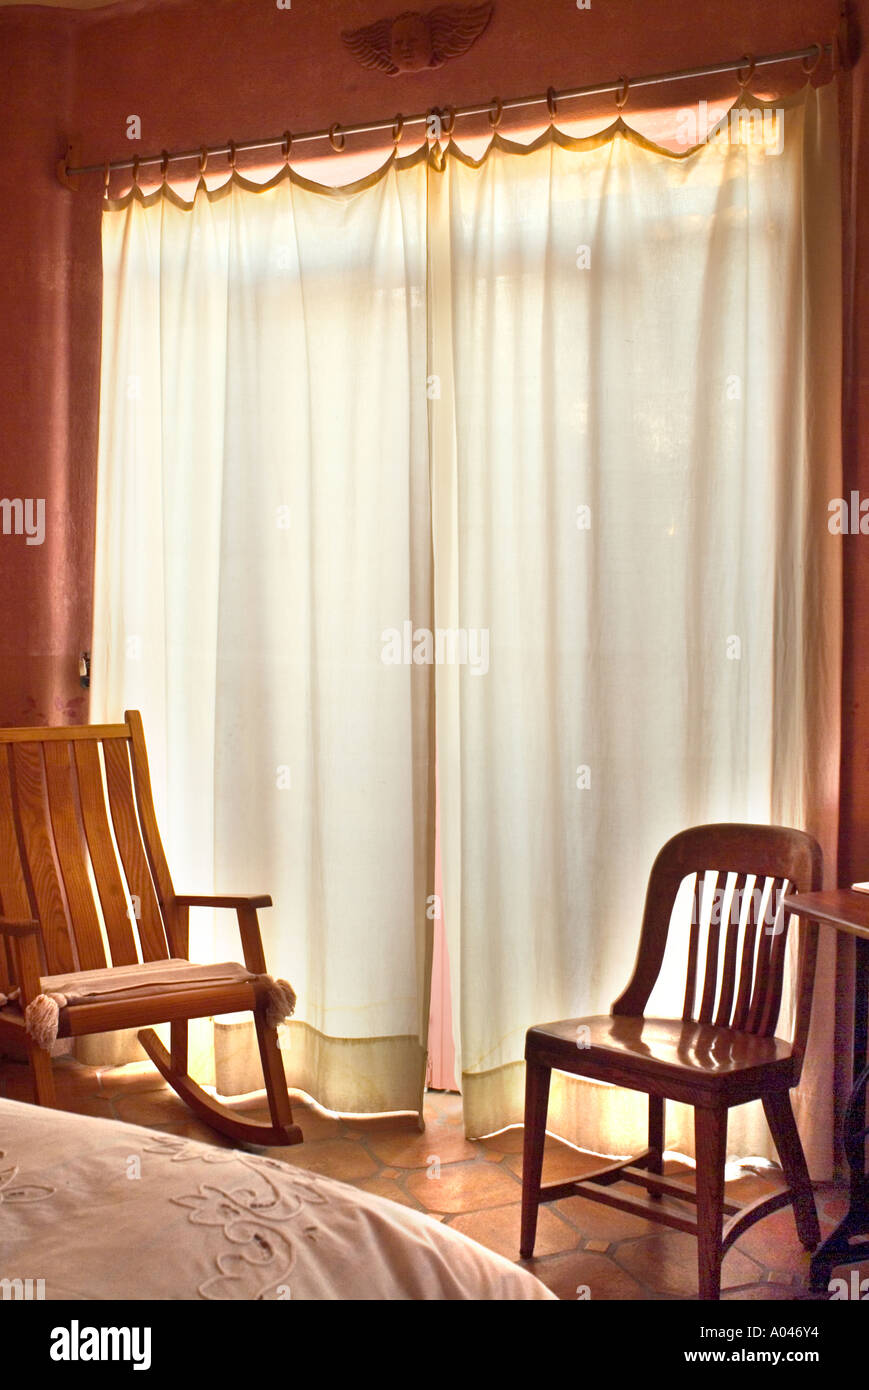 Backlit White Curtains In Mexican Style Bedroom Wooden Rocking Chair Tile  Floor San Miguel De Allende Mexico